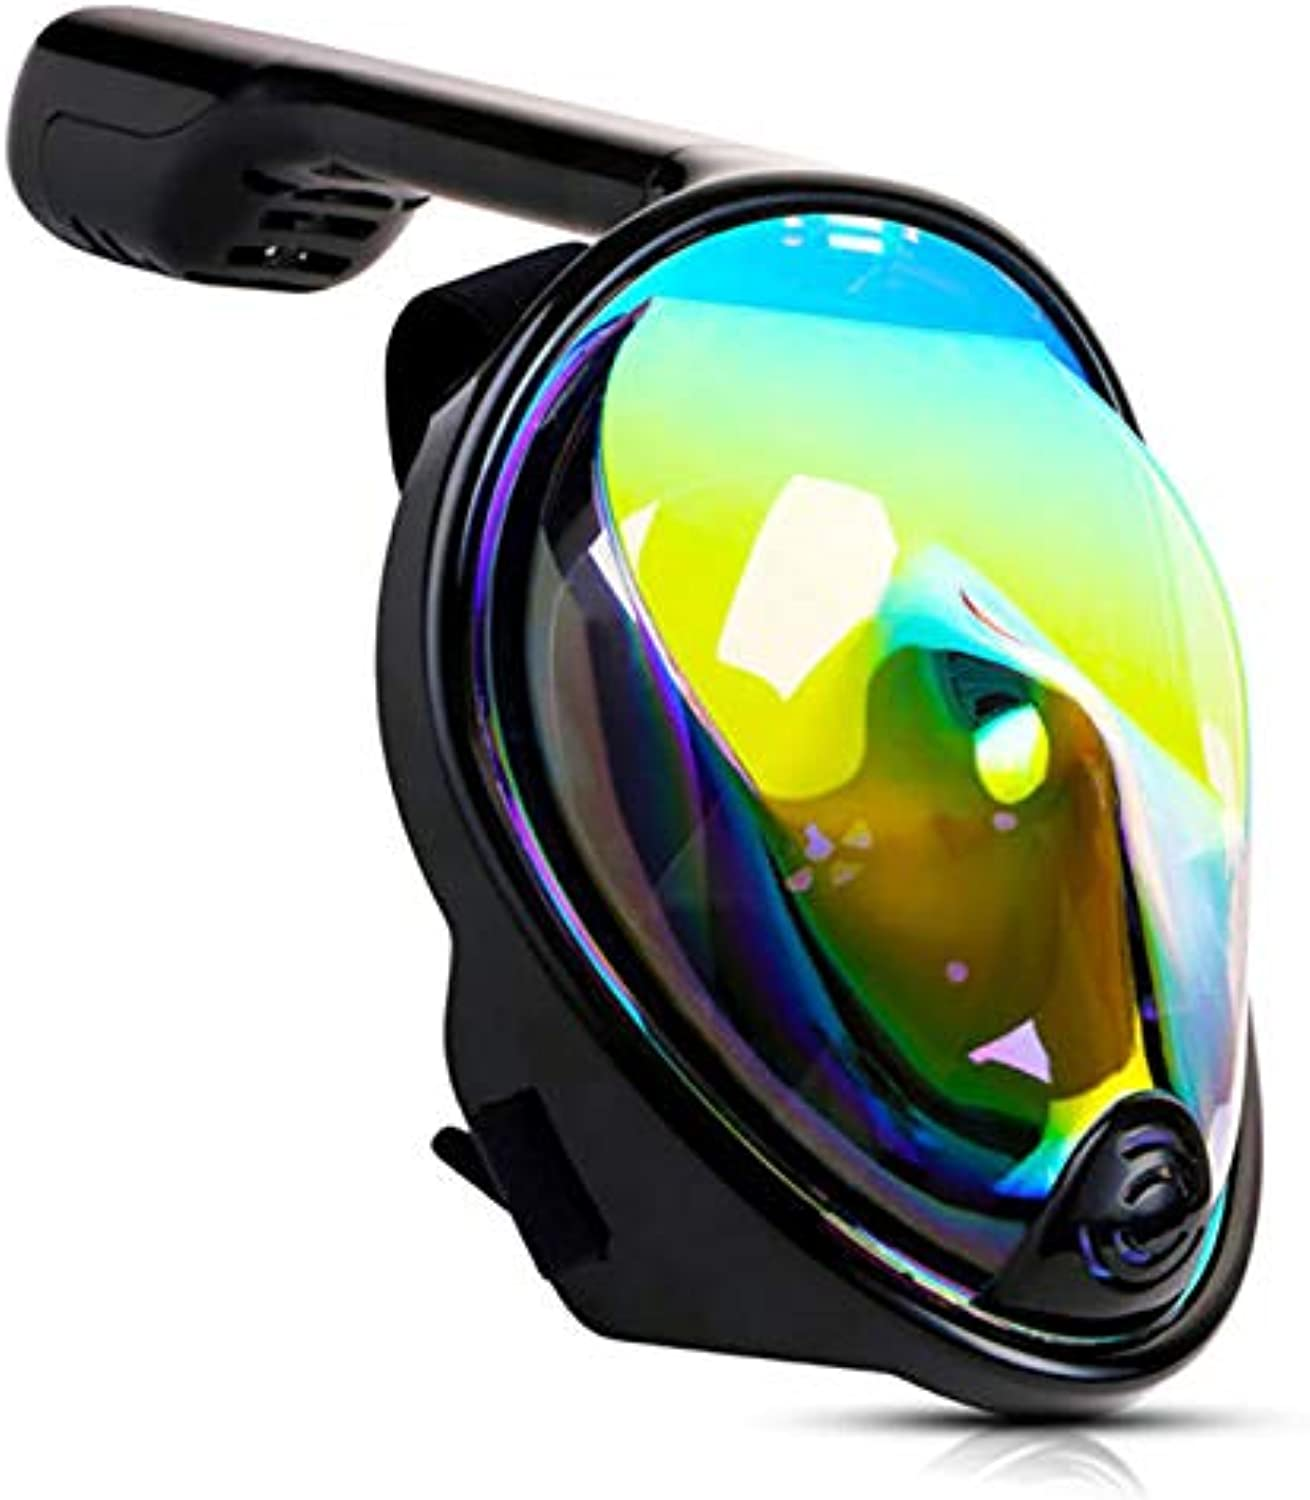 c956c6f9c43c27 SSXY Breath Swimming Diving Mask Silicone Diving Mask Iris Snorkel Goggles  Full Face Snorkeling Mask